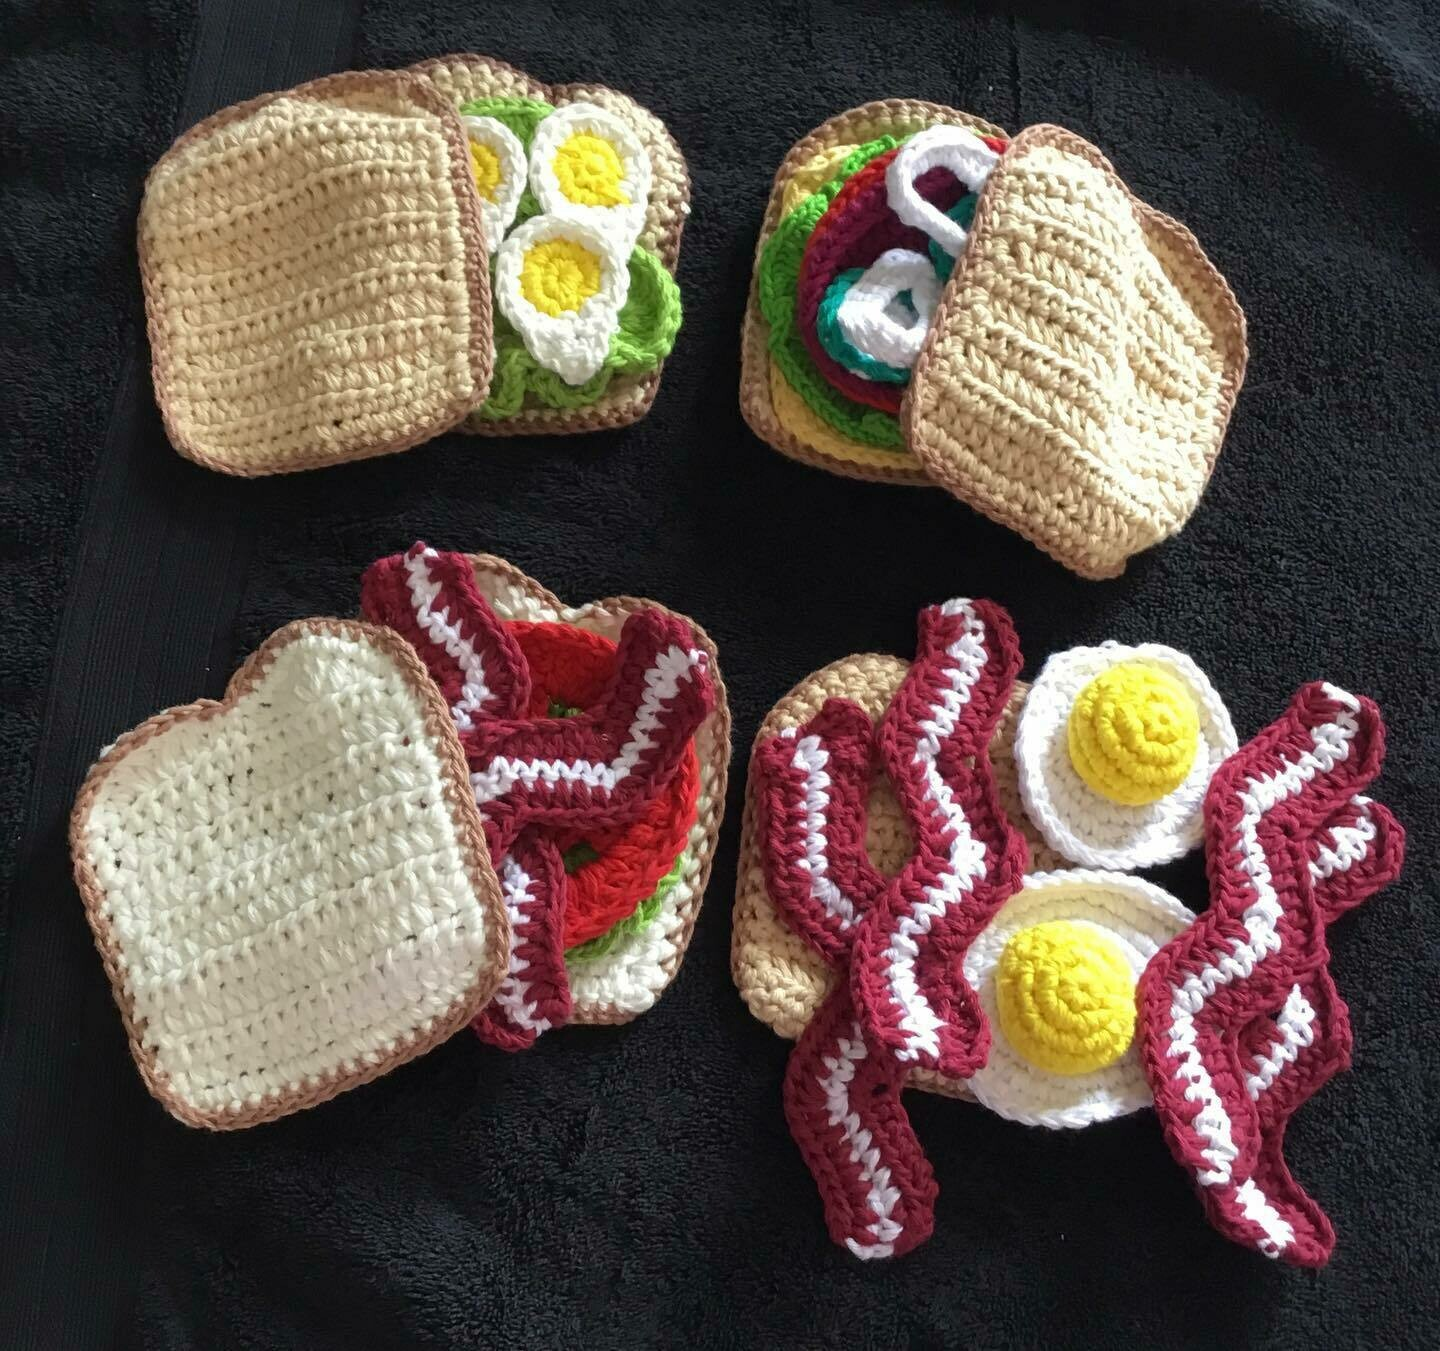 Set of 4 crocheted sandwiches